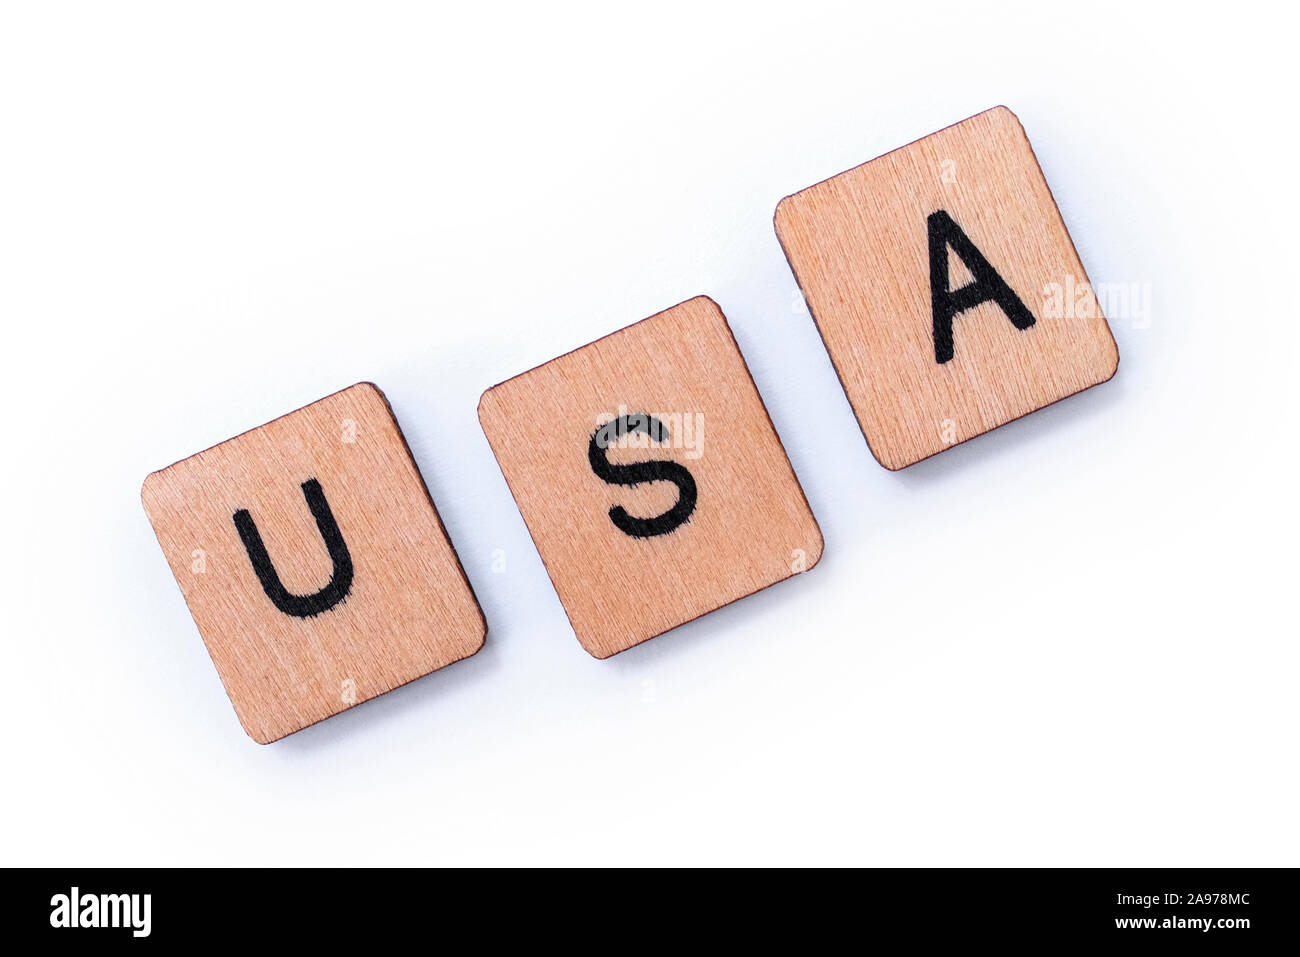 The abbreviation USA - standing for the United States of America, spelt with wooden letter tiles over a white background. Stock Photo